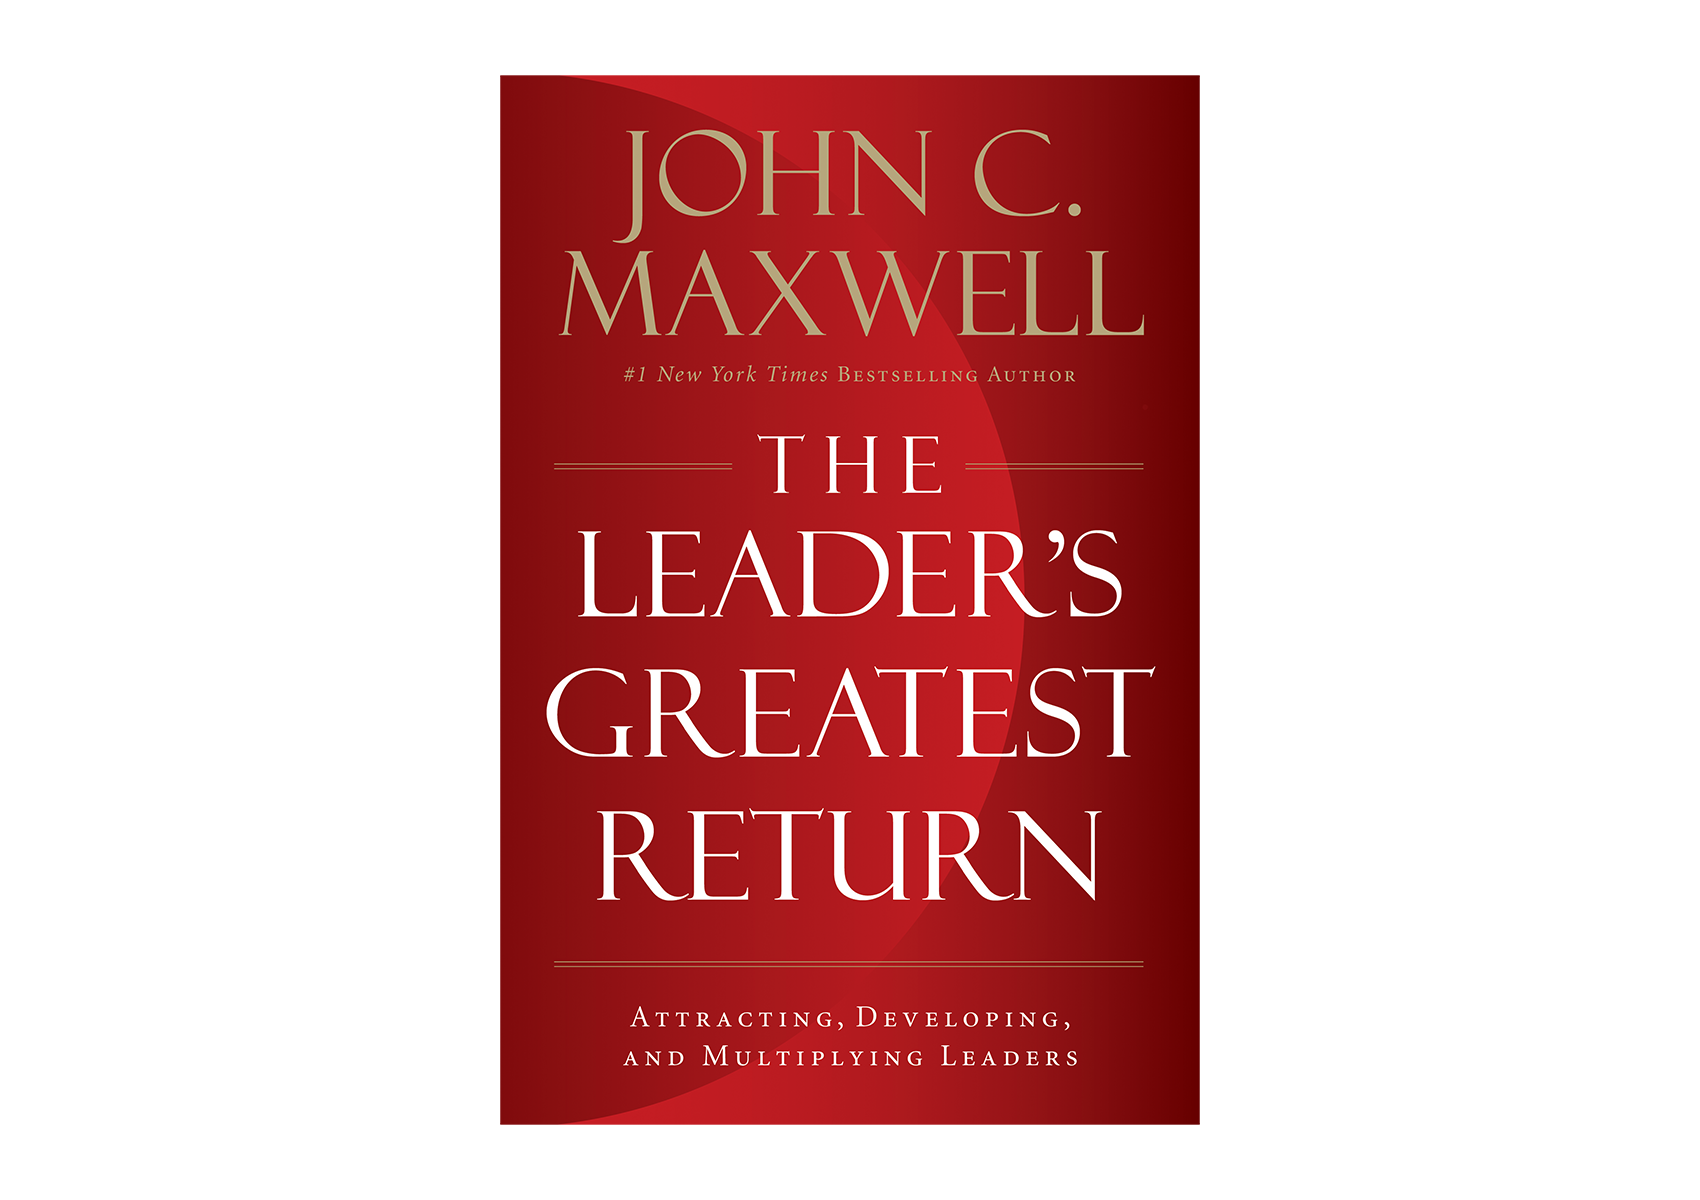 The Leaders Greatest Return [Hardcover]